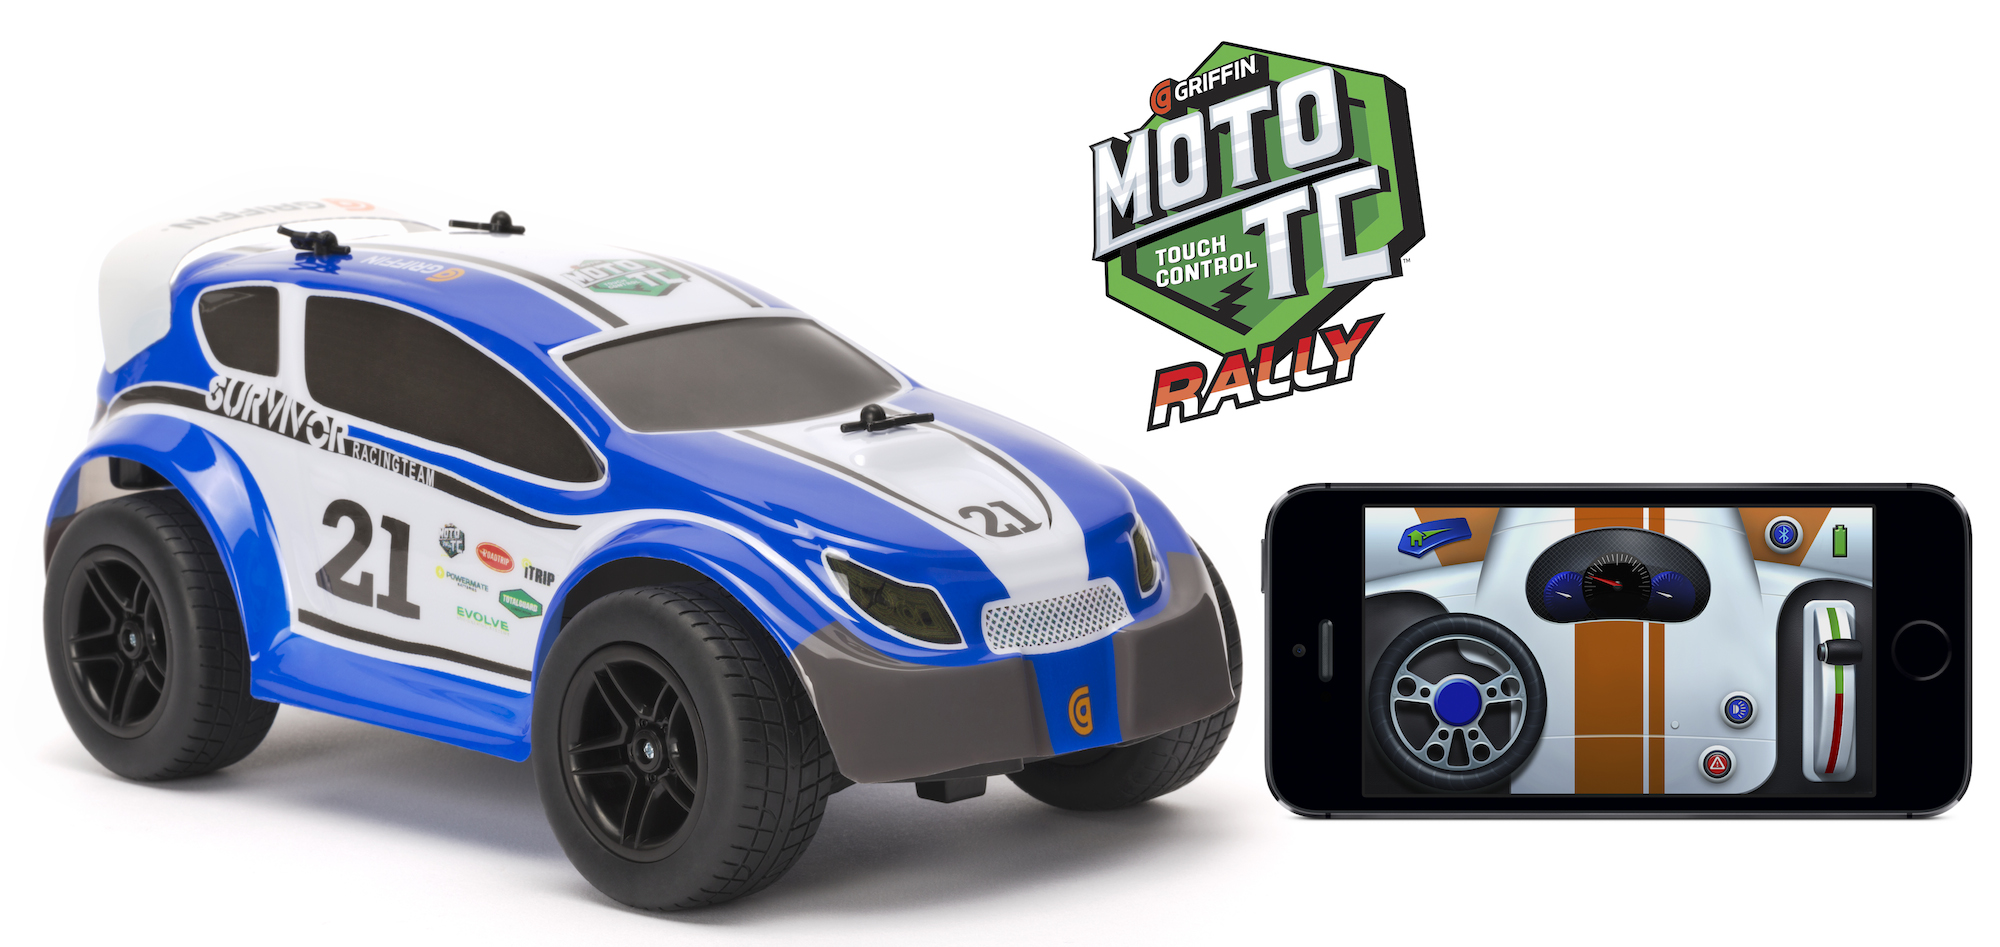 Moto_TC_Rally_header_new_high_res2